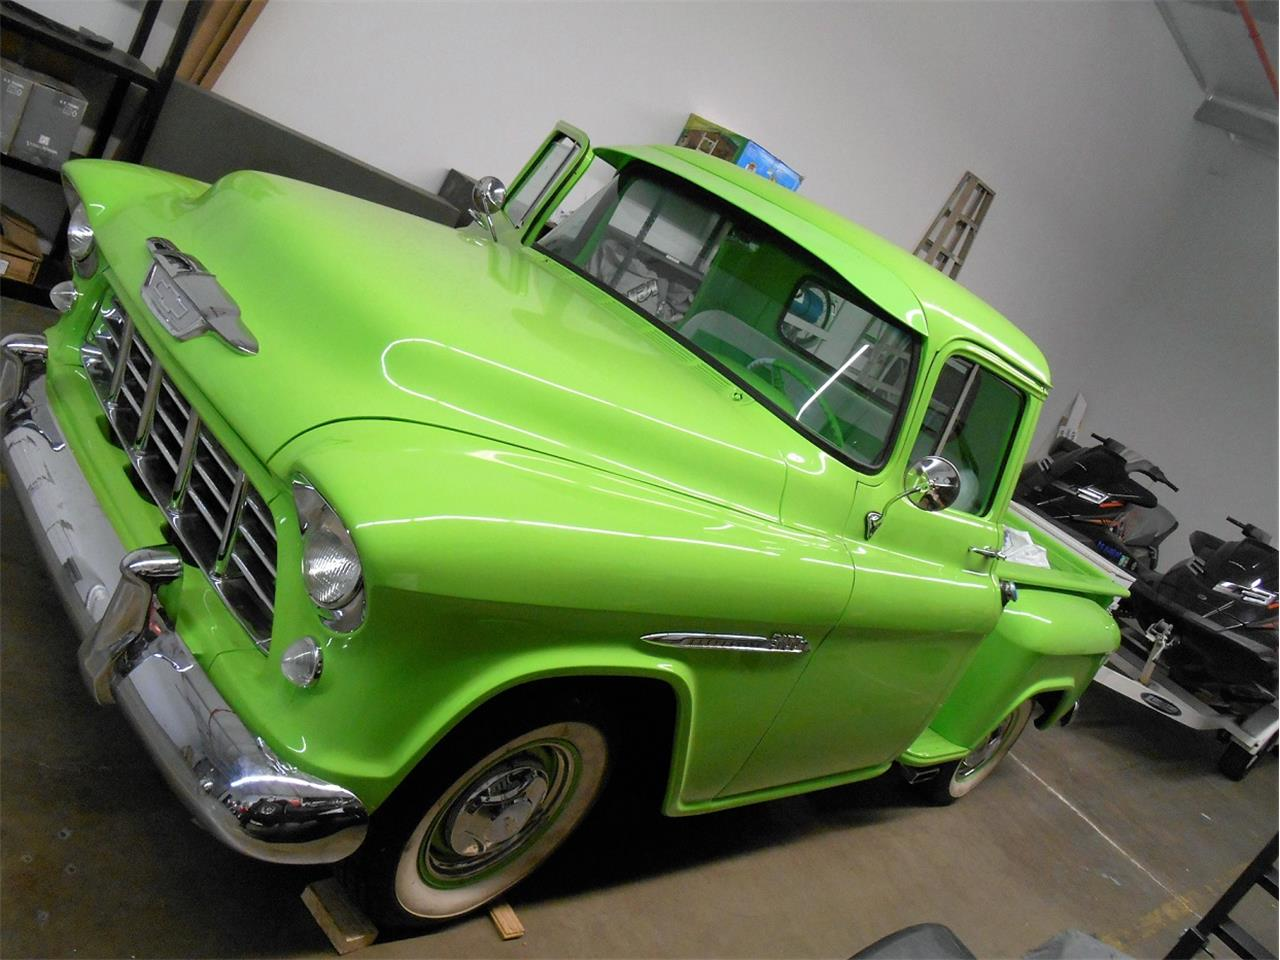 Large Picture of '55 Chevrolet 3100 located in California - $45,000.00 Offered by a Private Seller - HGJ9